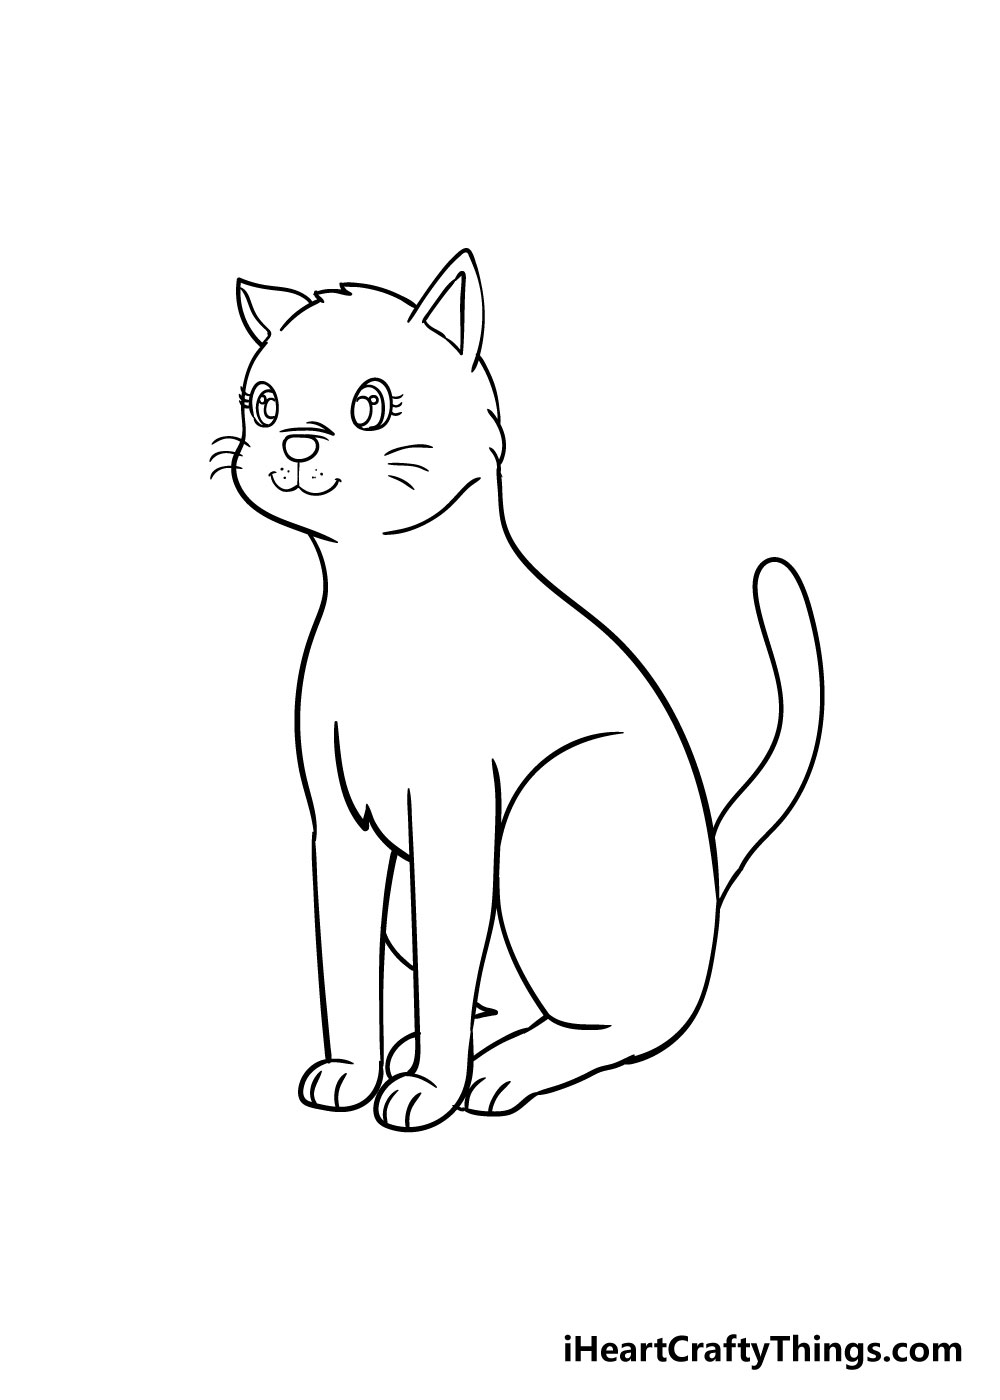 cat drawing step 8